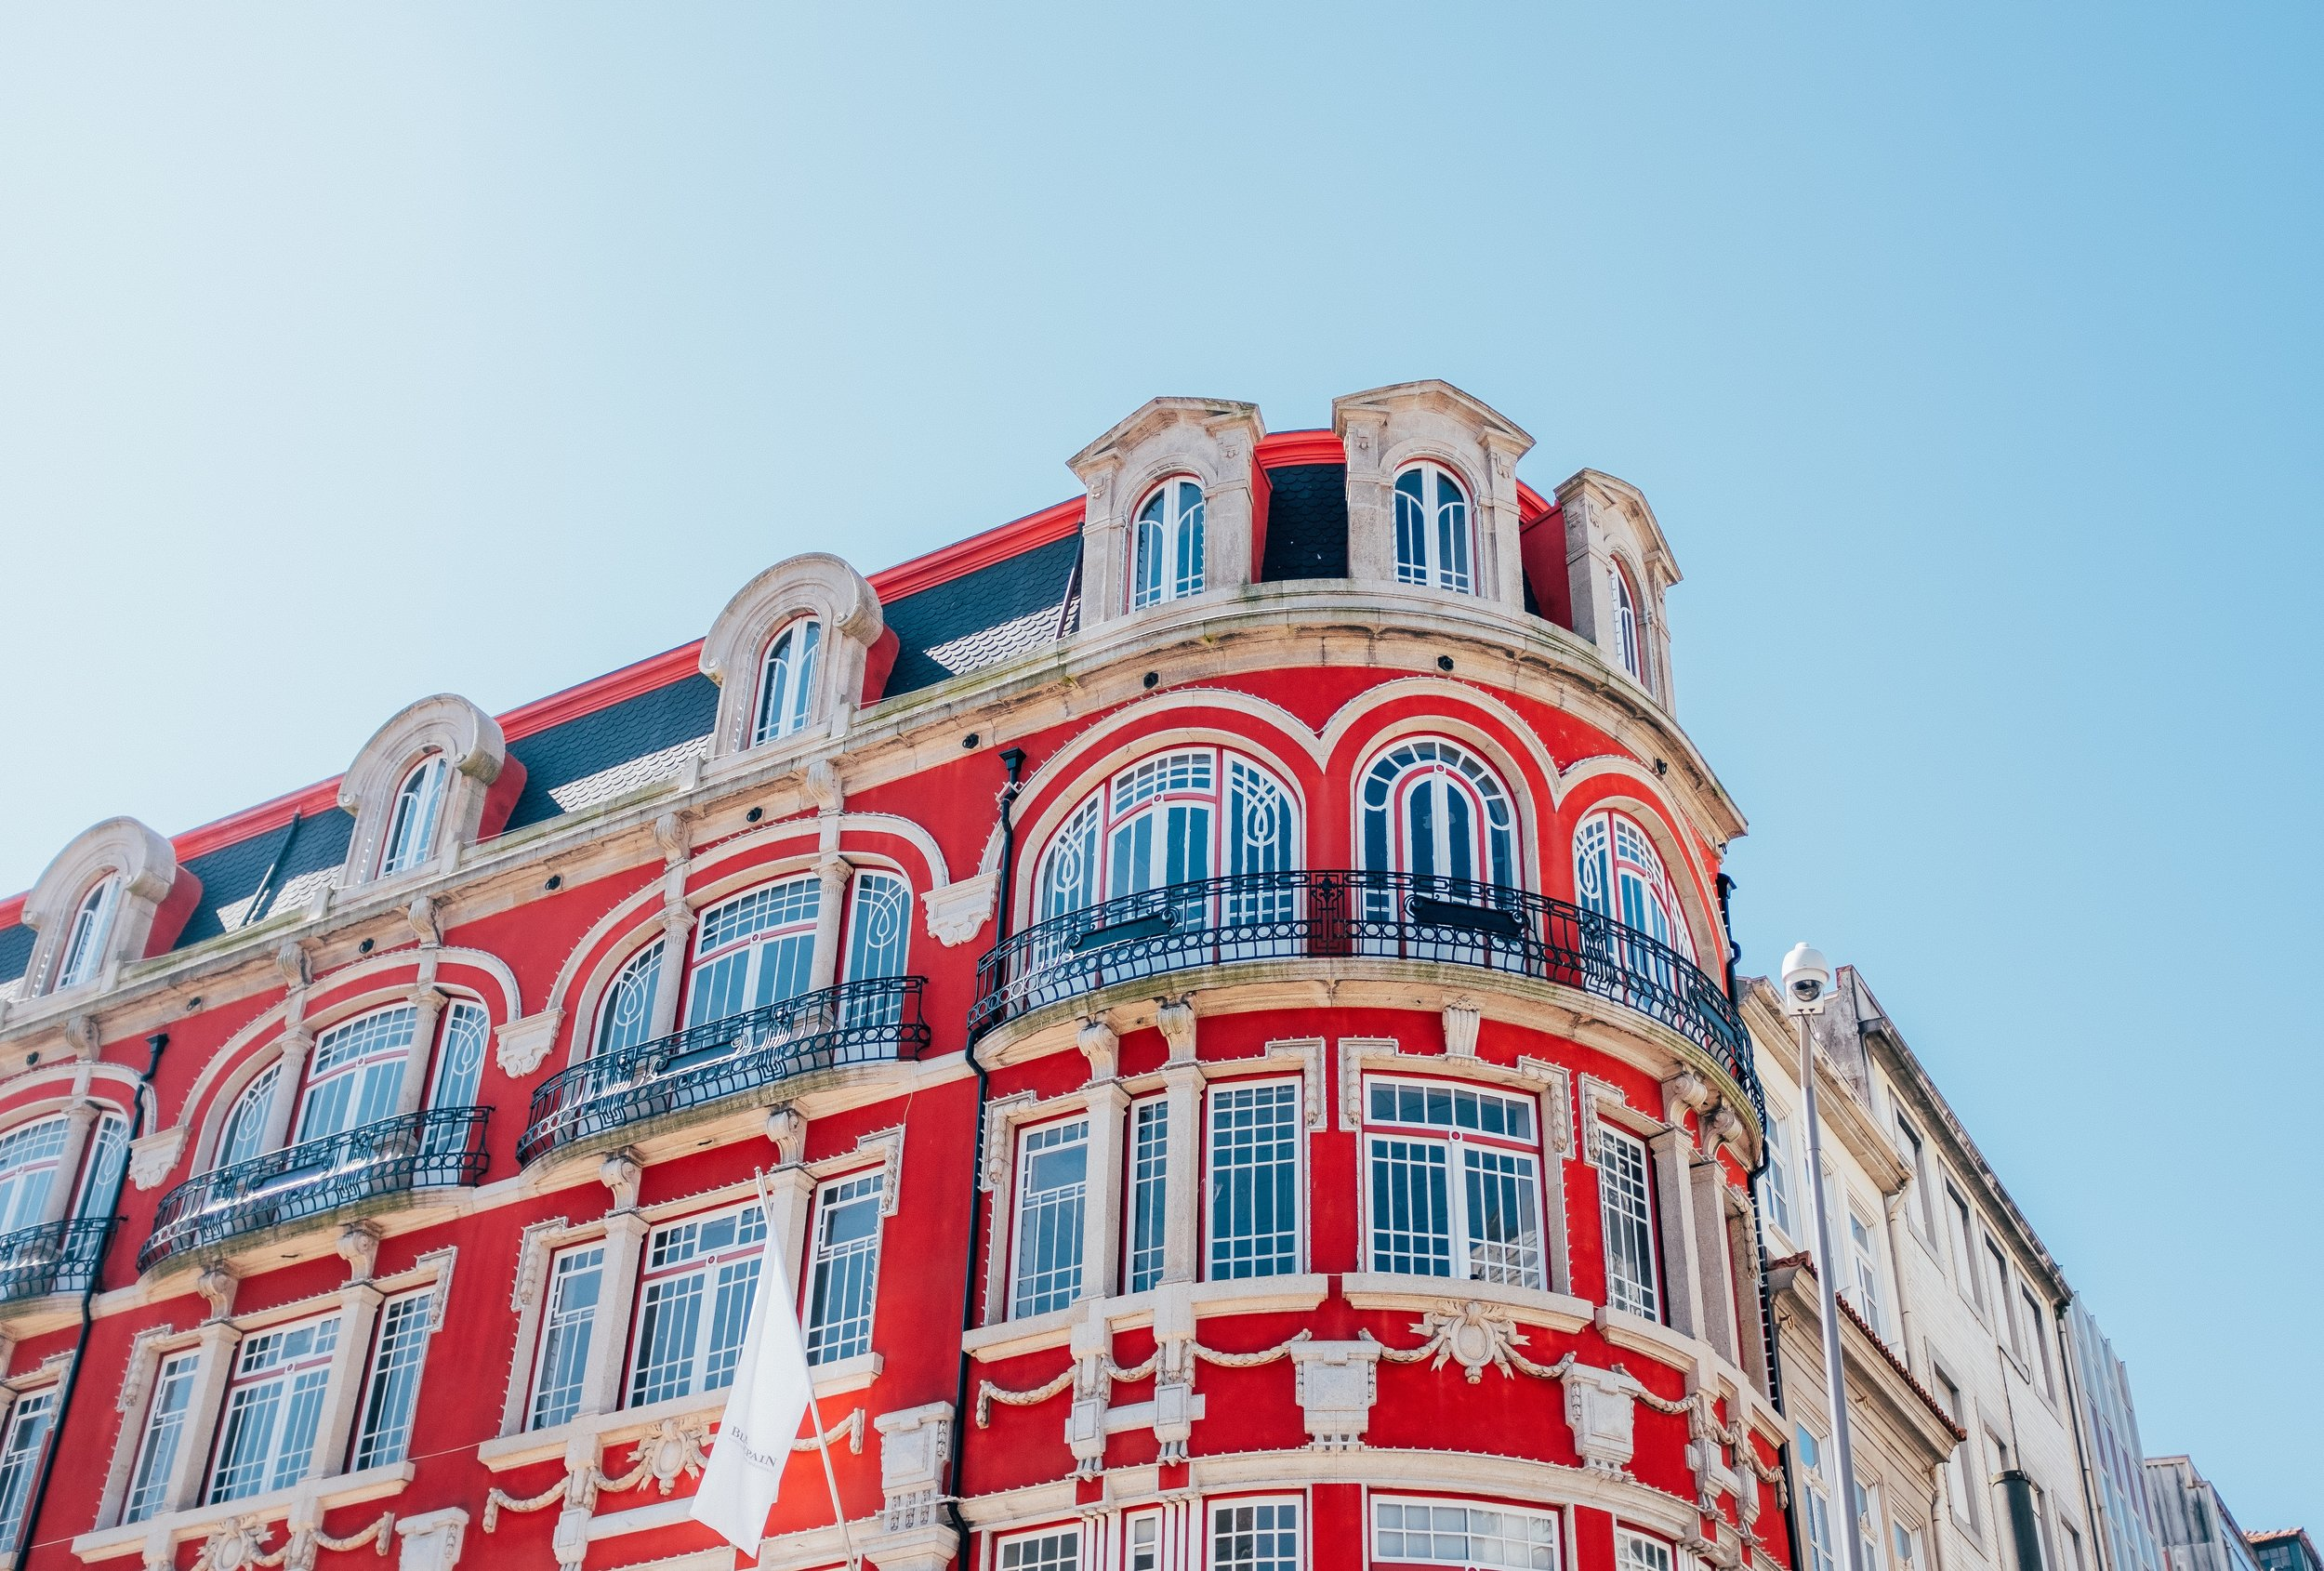 MAY 5 - 8, 20203 DAYS IN PORTO, PORTUGAL. - Picturesque and charismatic, with an endless supply of treasures waiting to be discovered by the avid traveler, Porto is one of Europe's best kept secrets. From its stunning Beaux-Arts station to its cool bars serving Porto's signature drink, this charming city combines the best of old and new.